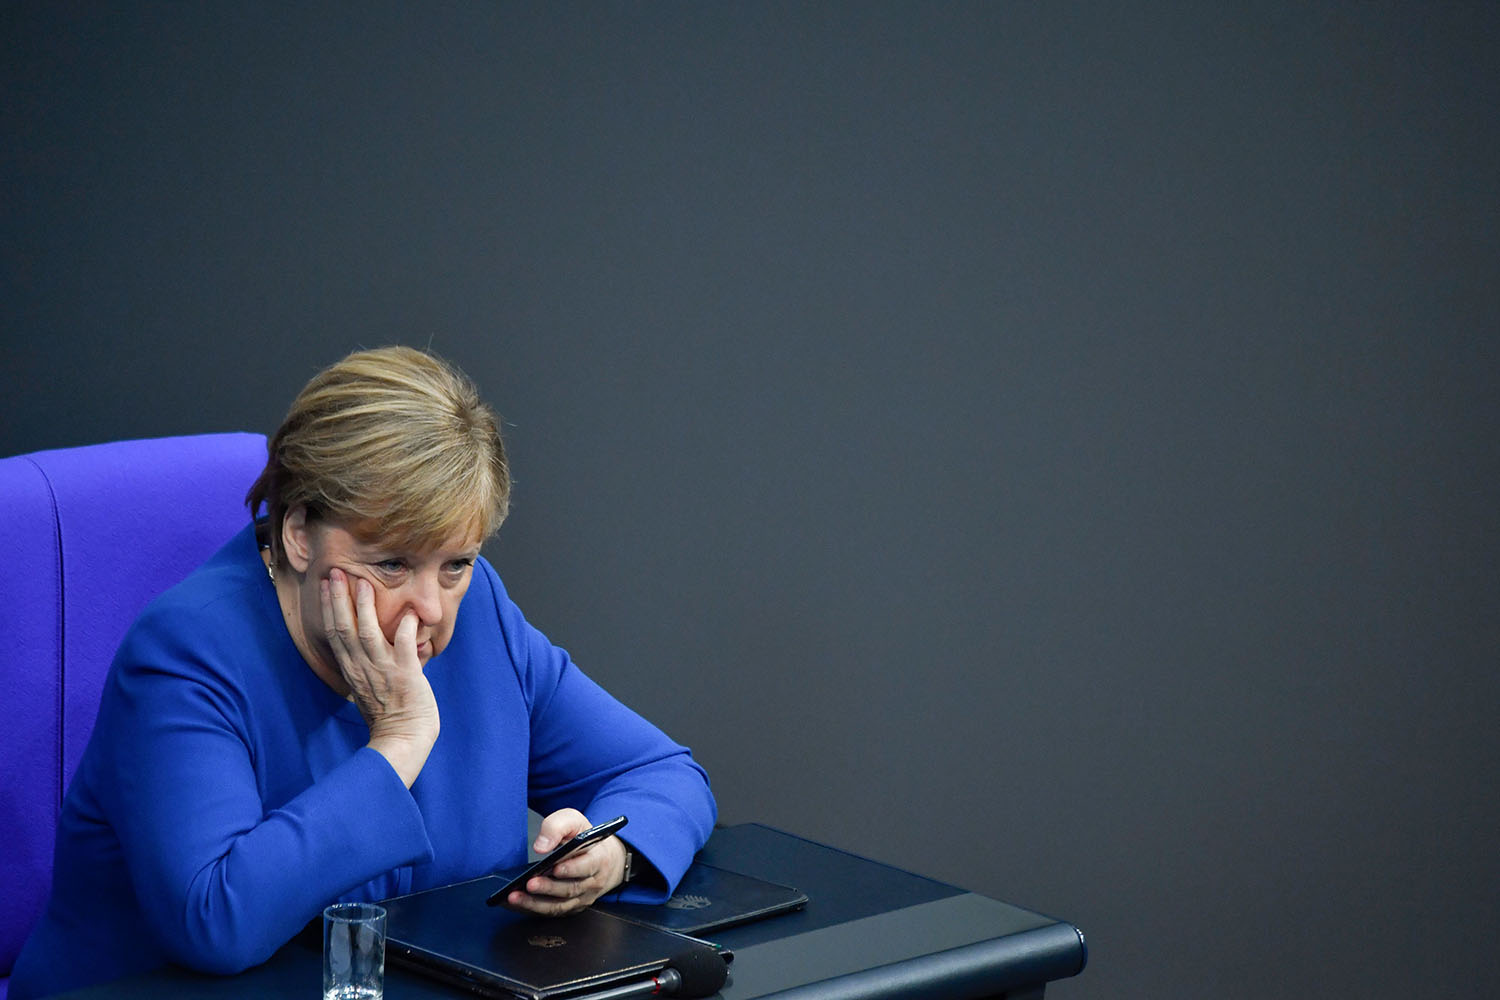 German Chancellor Angela Merkel attends a plenary session in Berlin on Oct. 17. JOHN MACDOUGALL/AFP via Getty Images